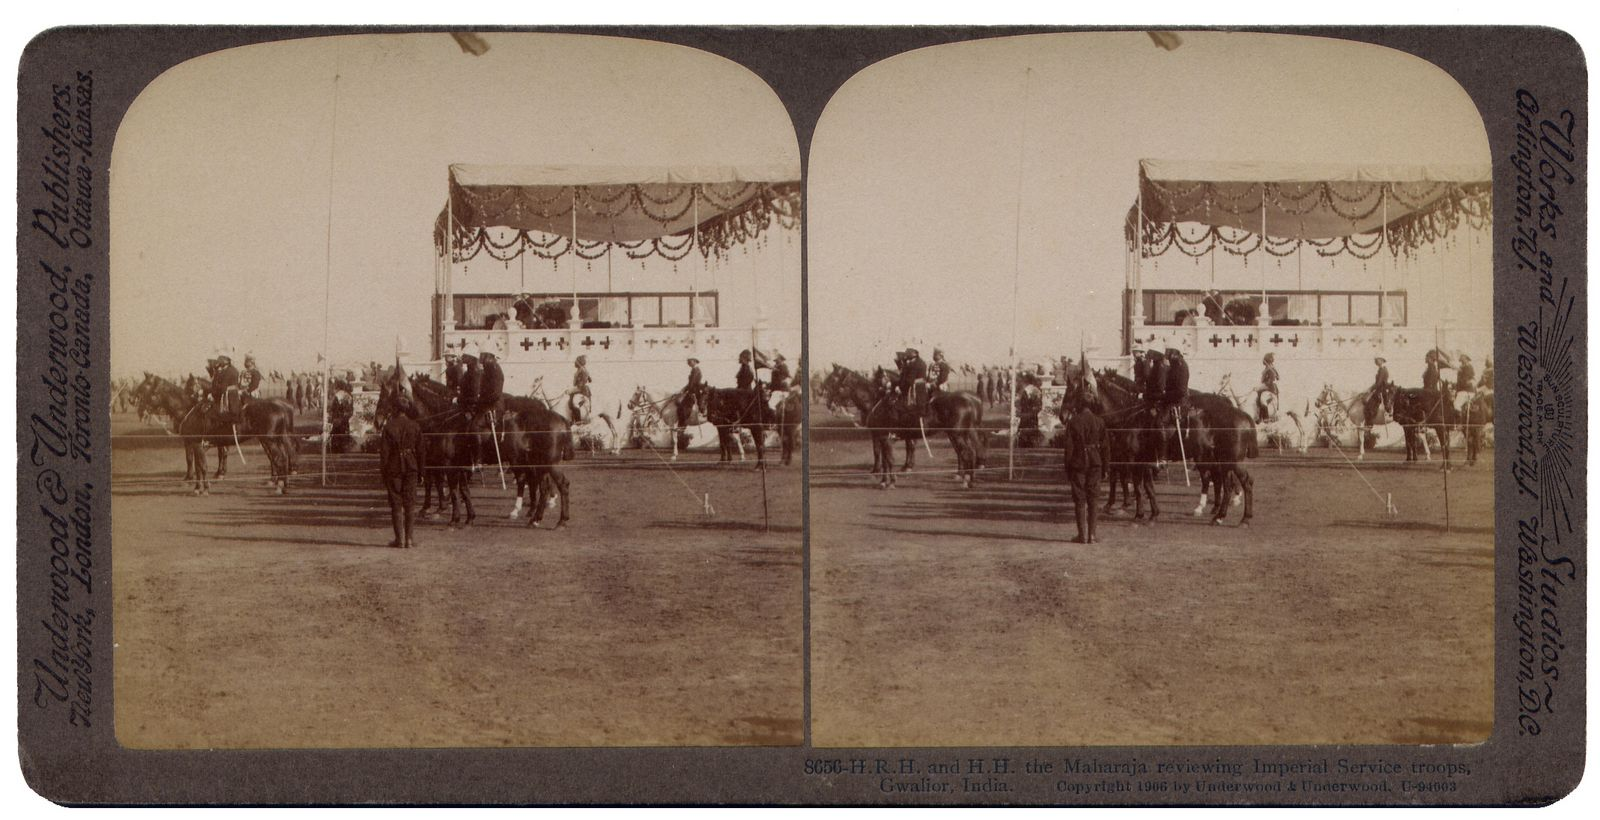 The Maharaja reviewing Imperial Service troops, Gwalior India